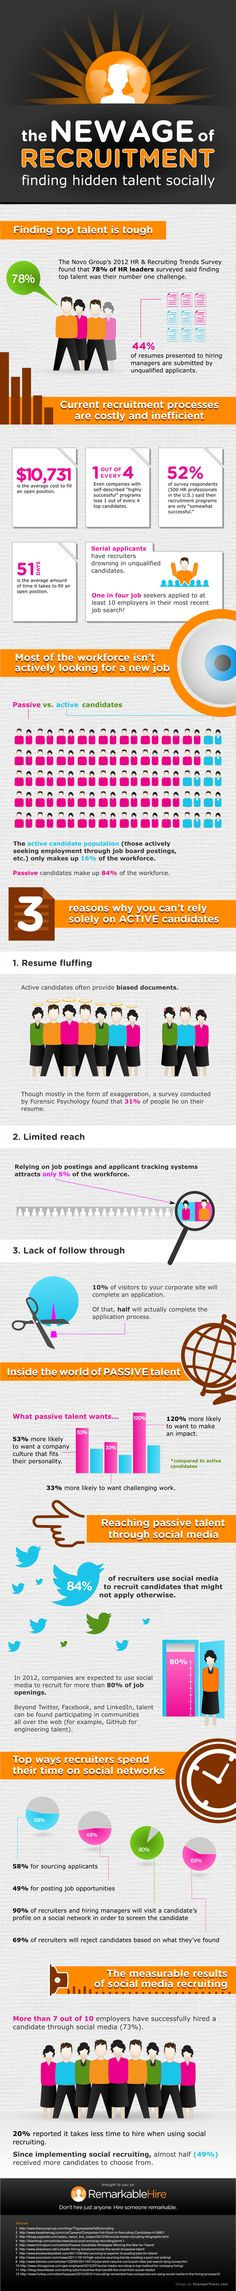 How to Find Top Tech Talent on Social Media   Employer Branding and Recruiting with Social Media   Scoop.it